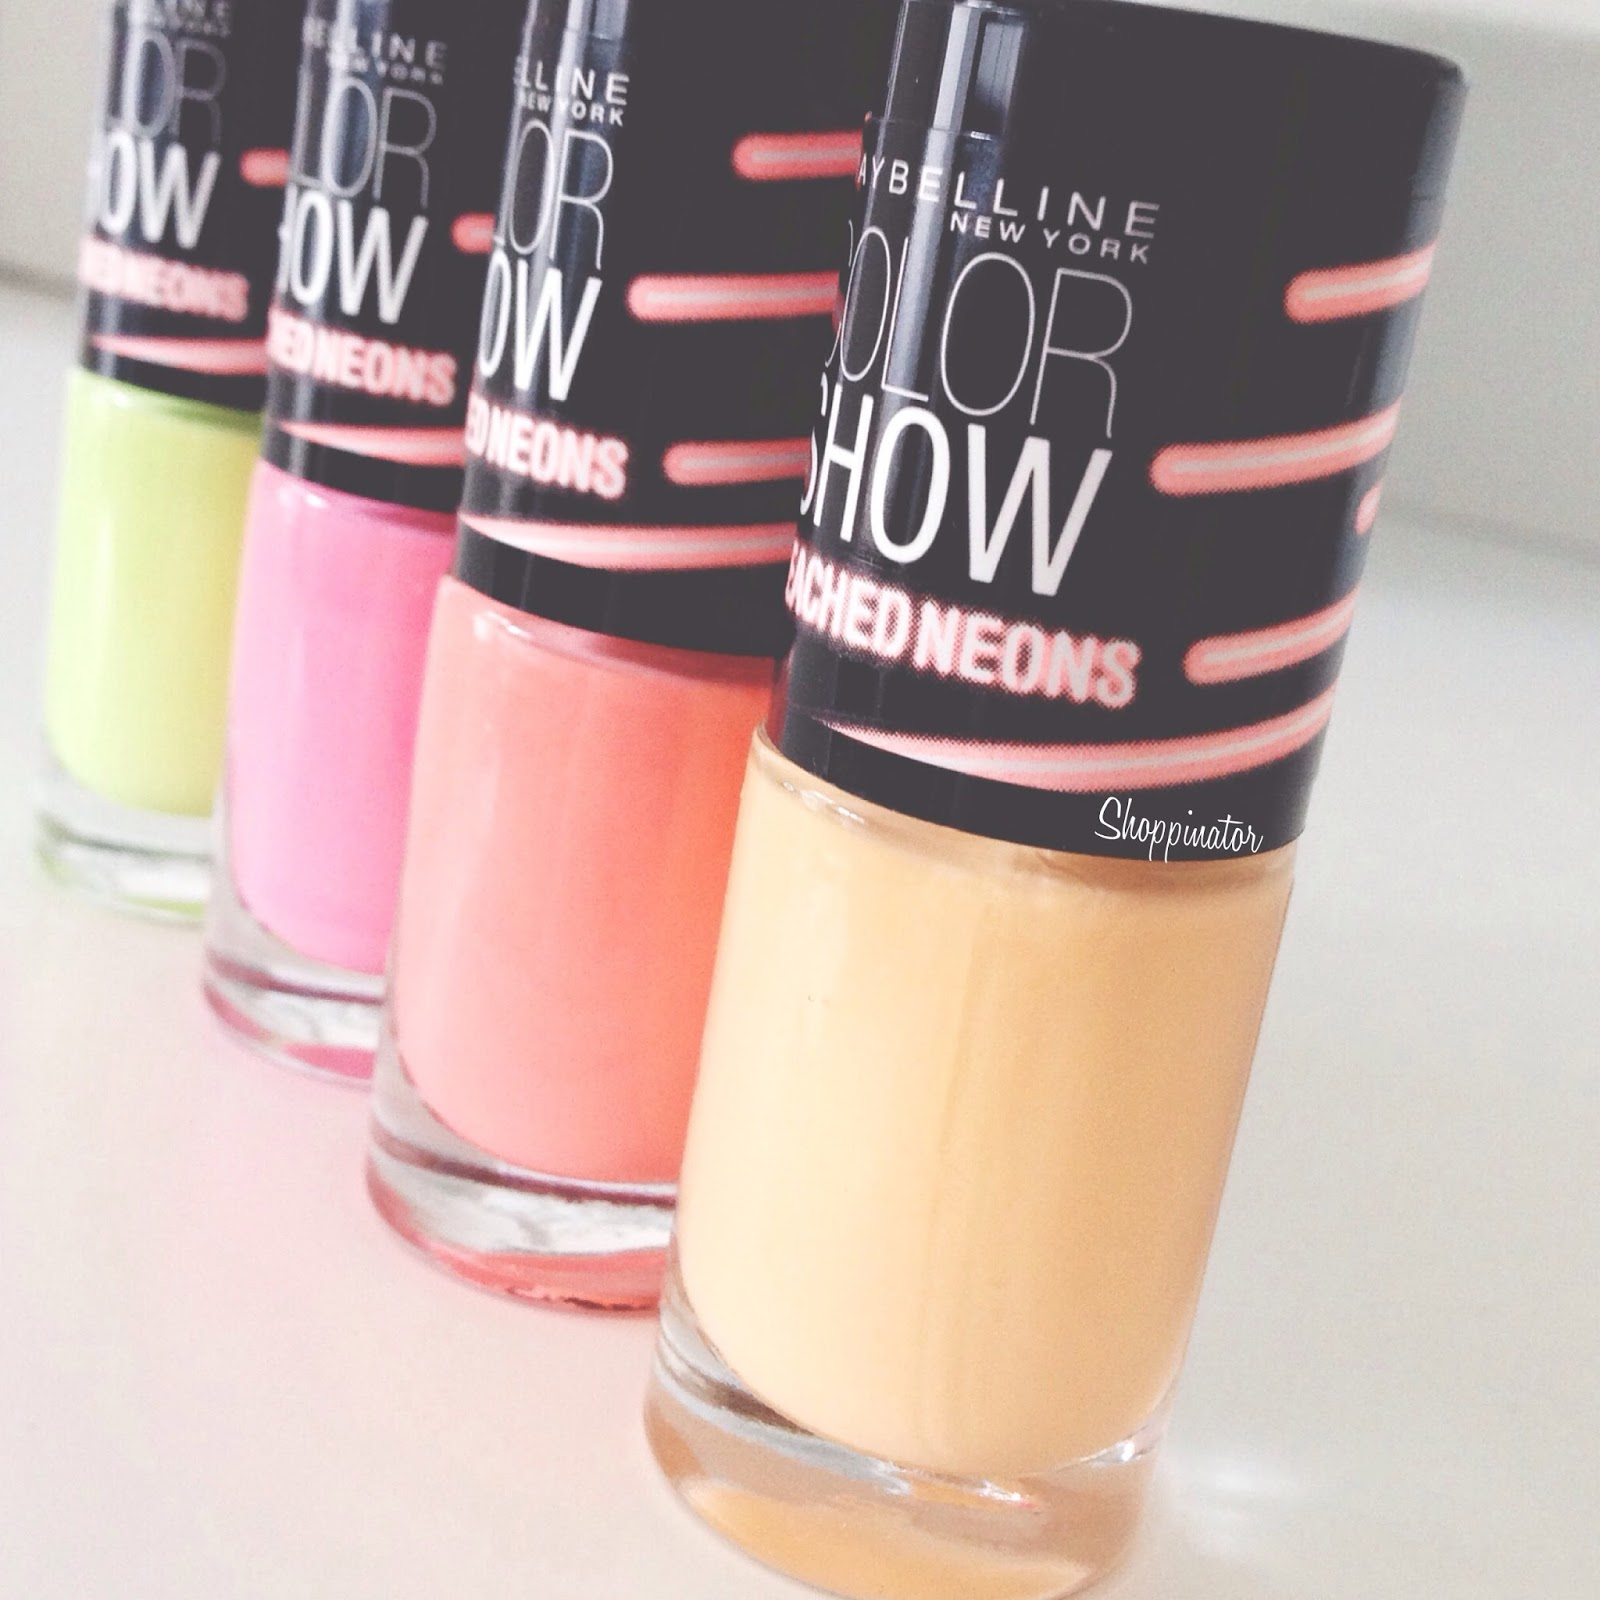 Maybelline 'Bleached Neons' | Swatches